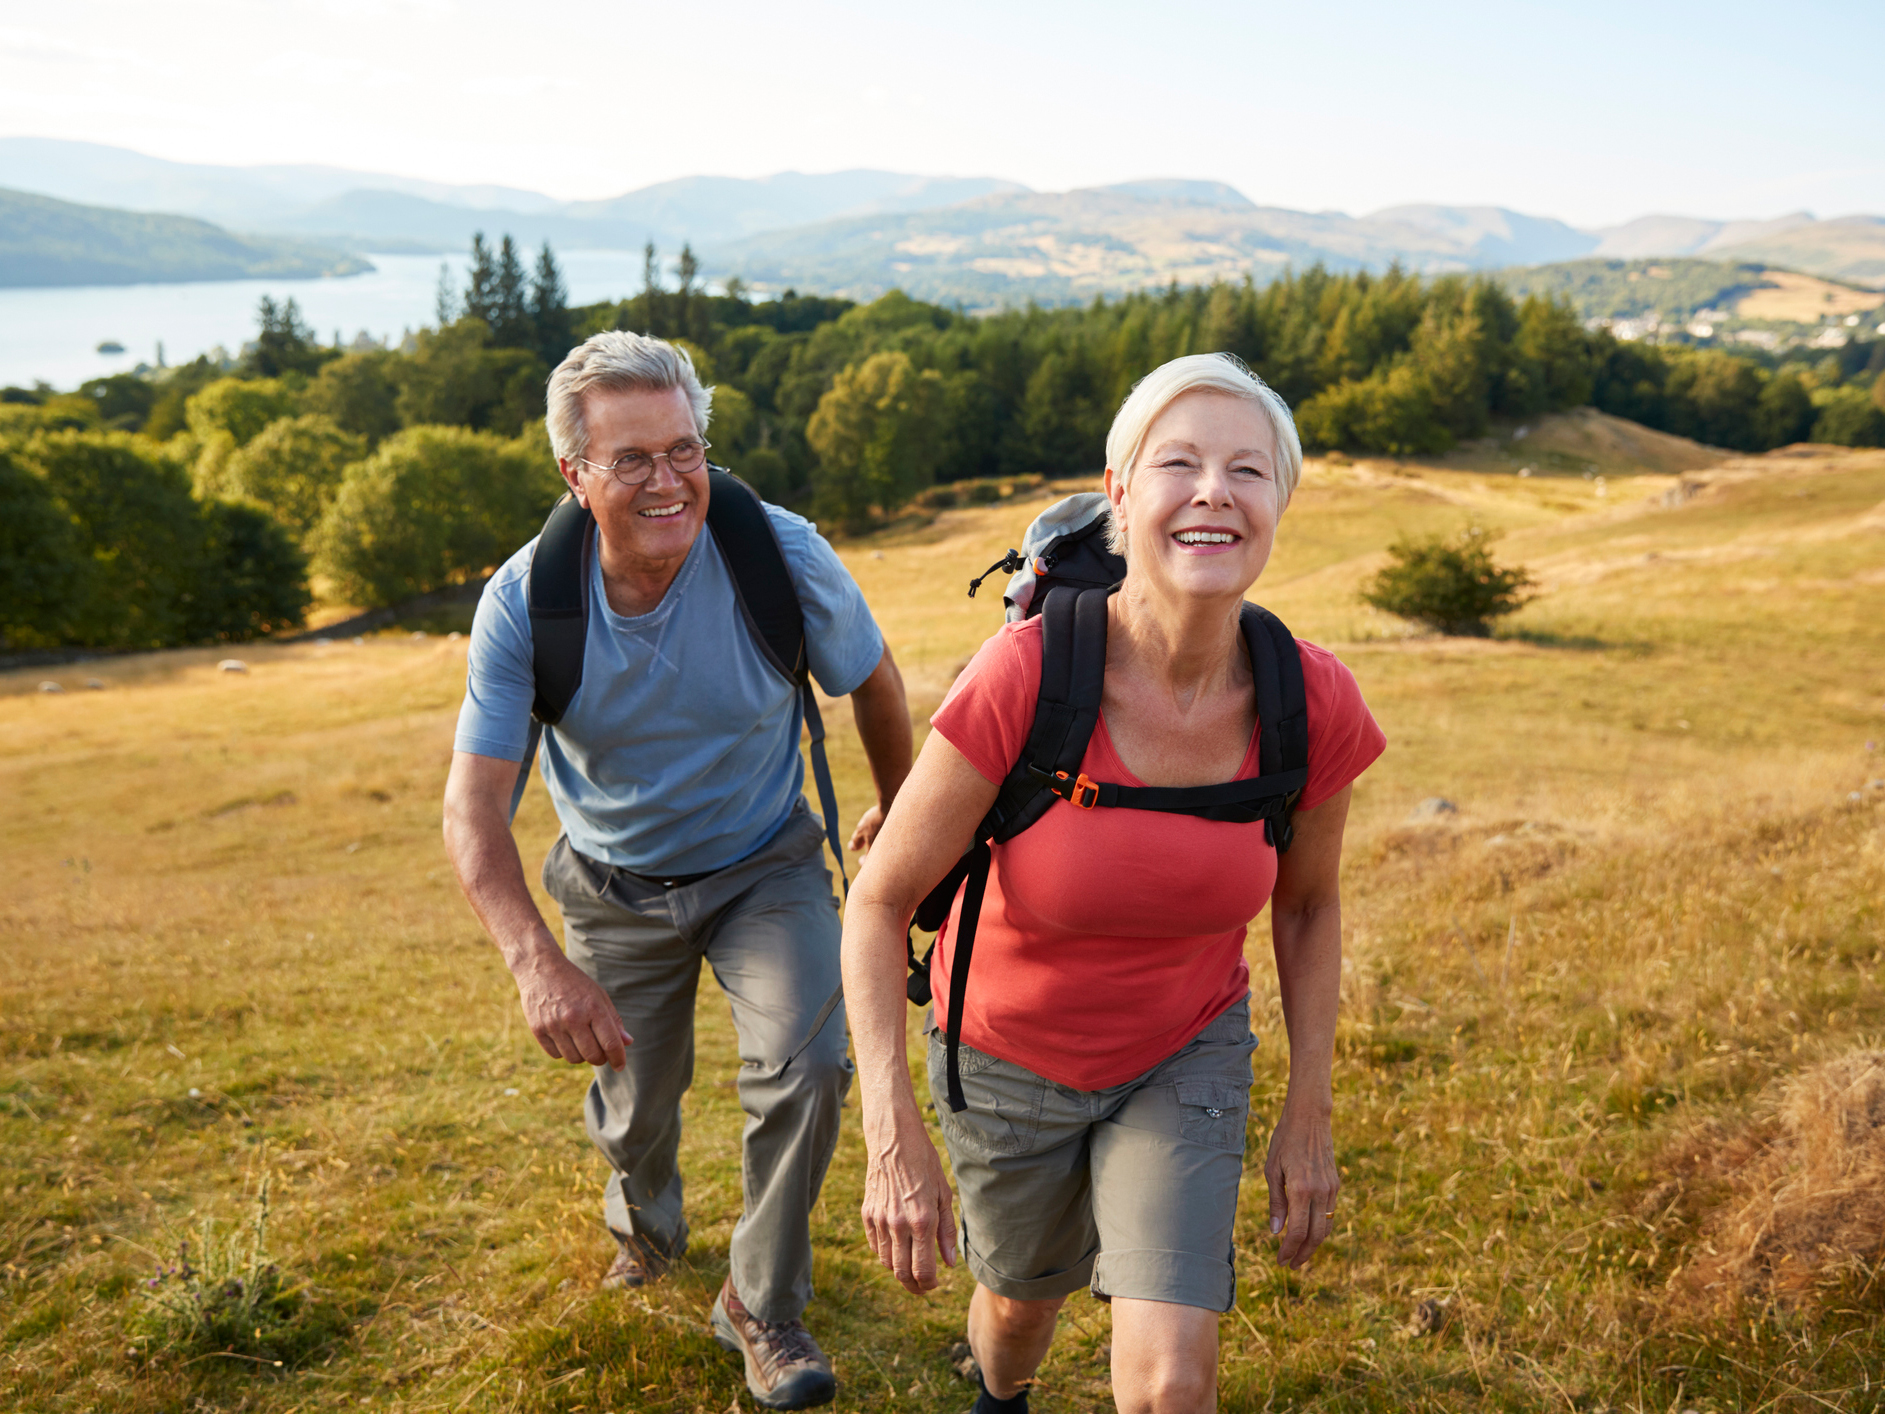 For strength, longevity and happiness, take a hike!